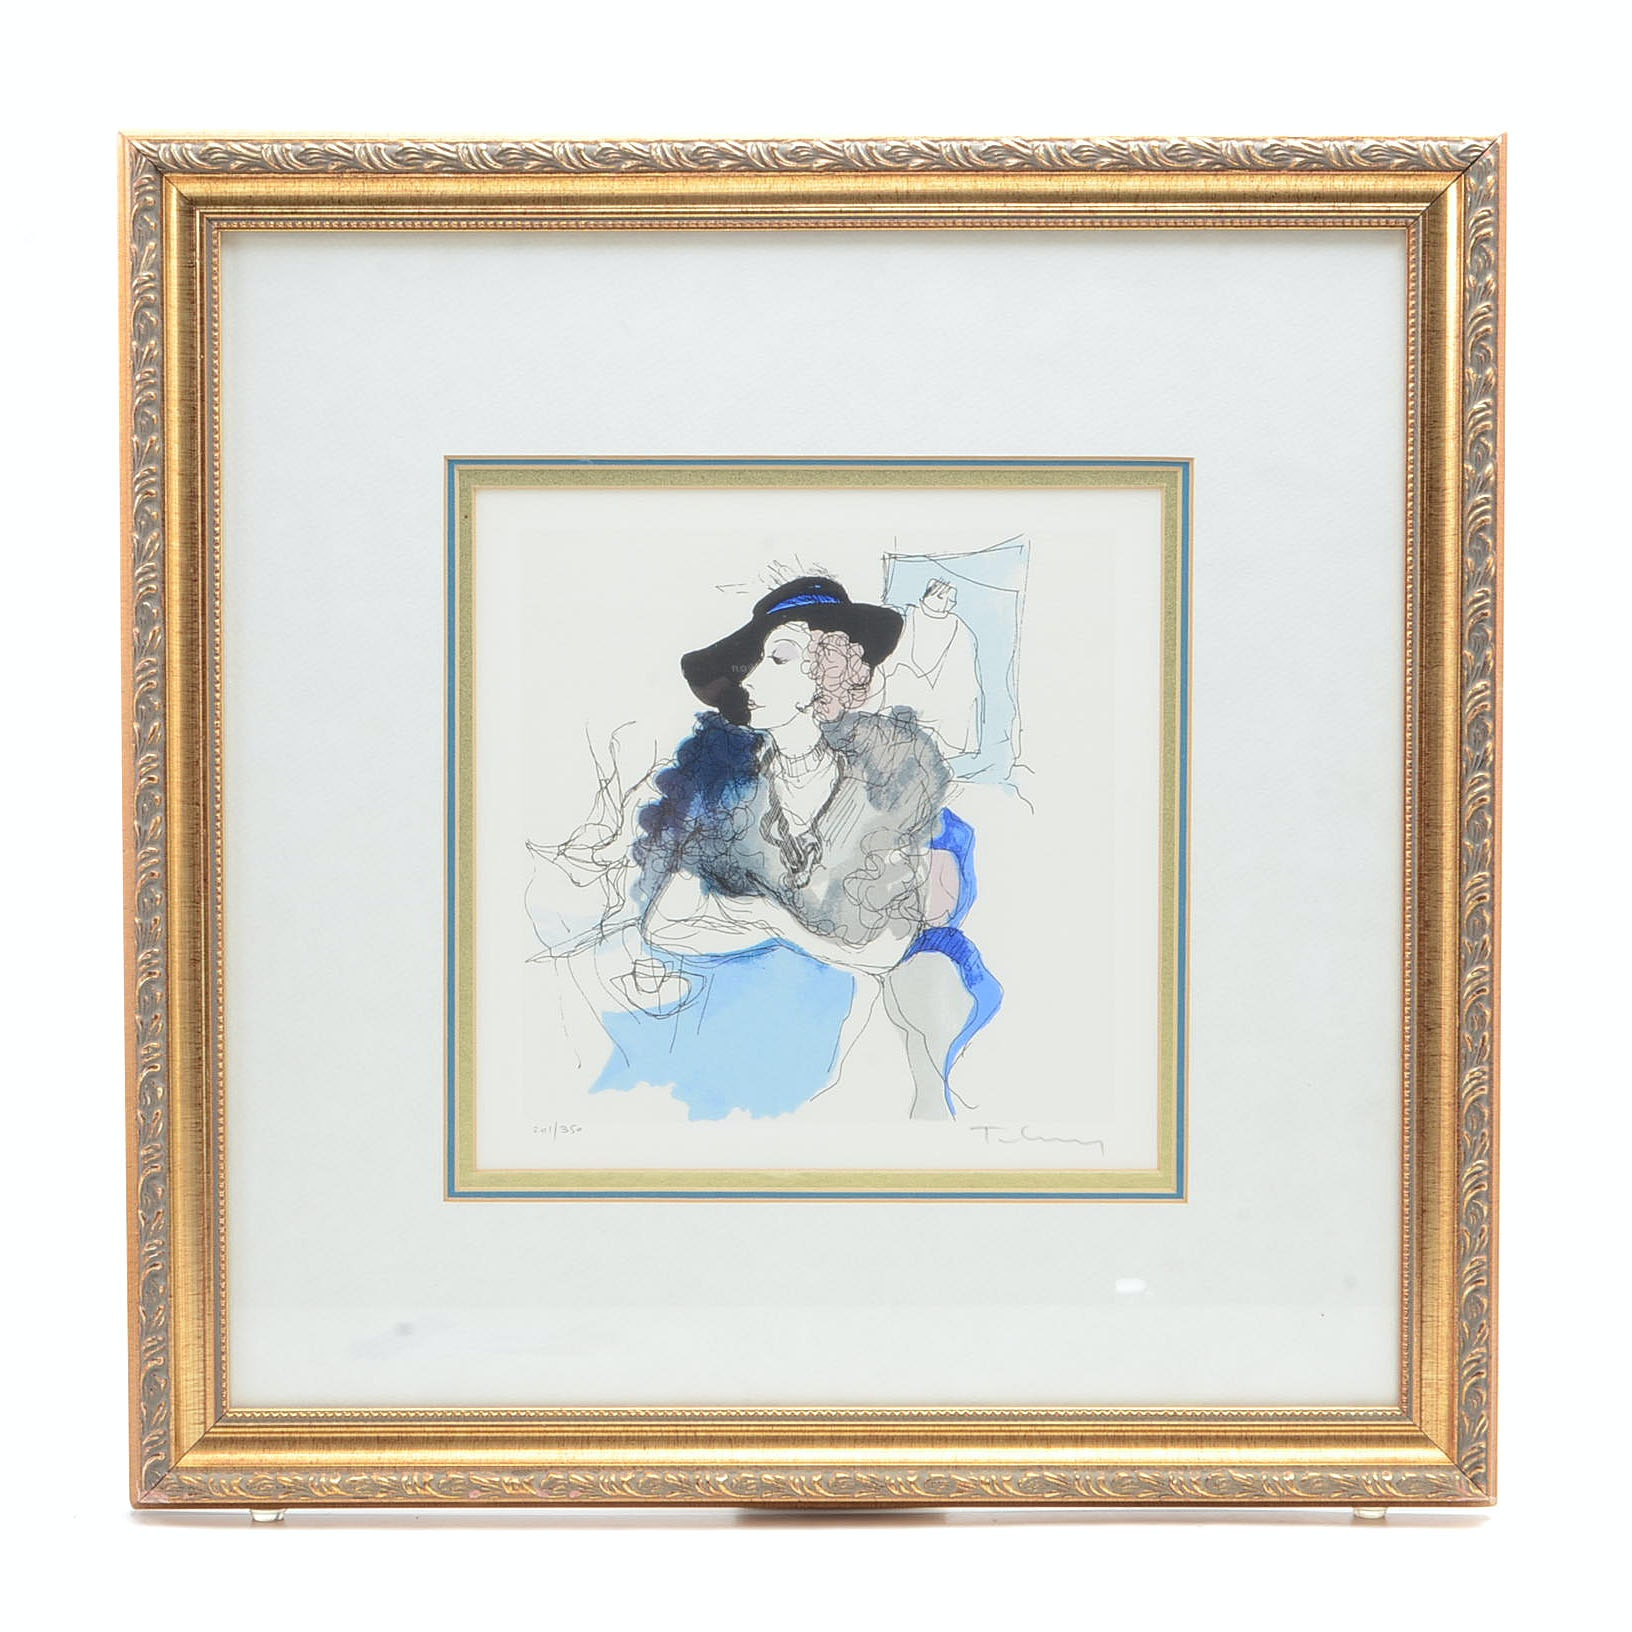 Itzchak Tarkay Signed Limited Edition Lithograph of Woman at Cafe Table